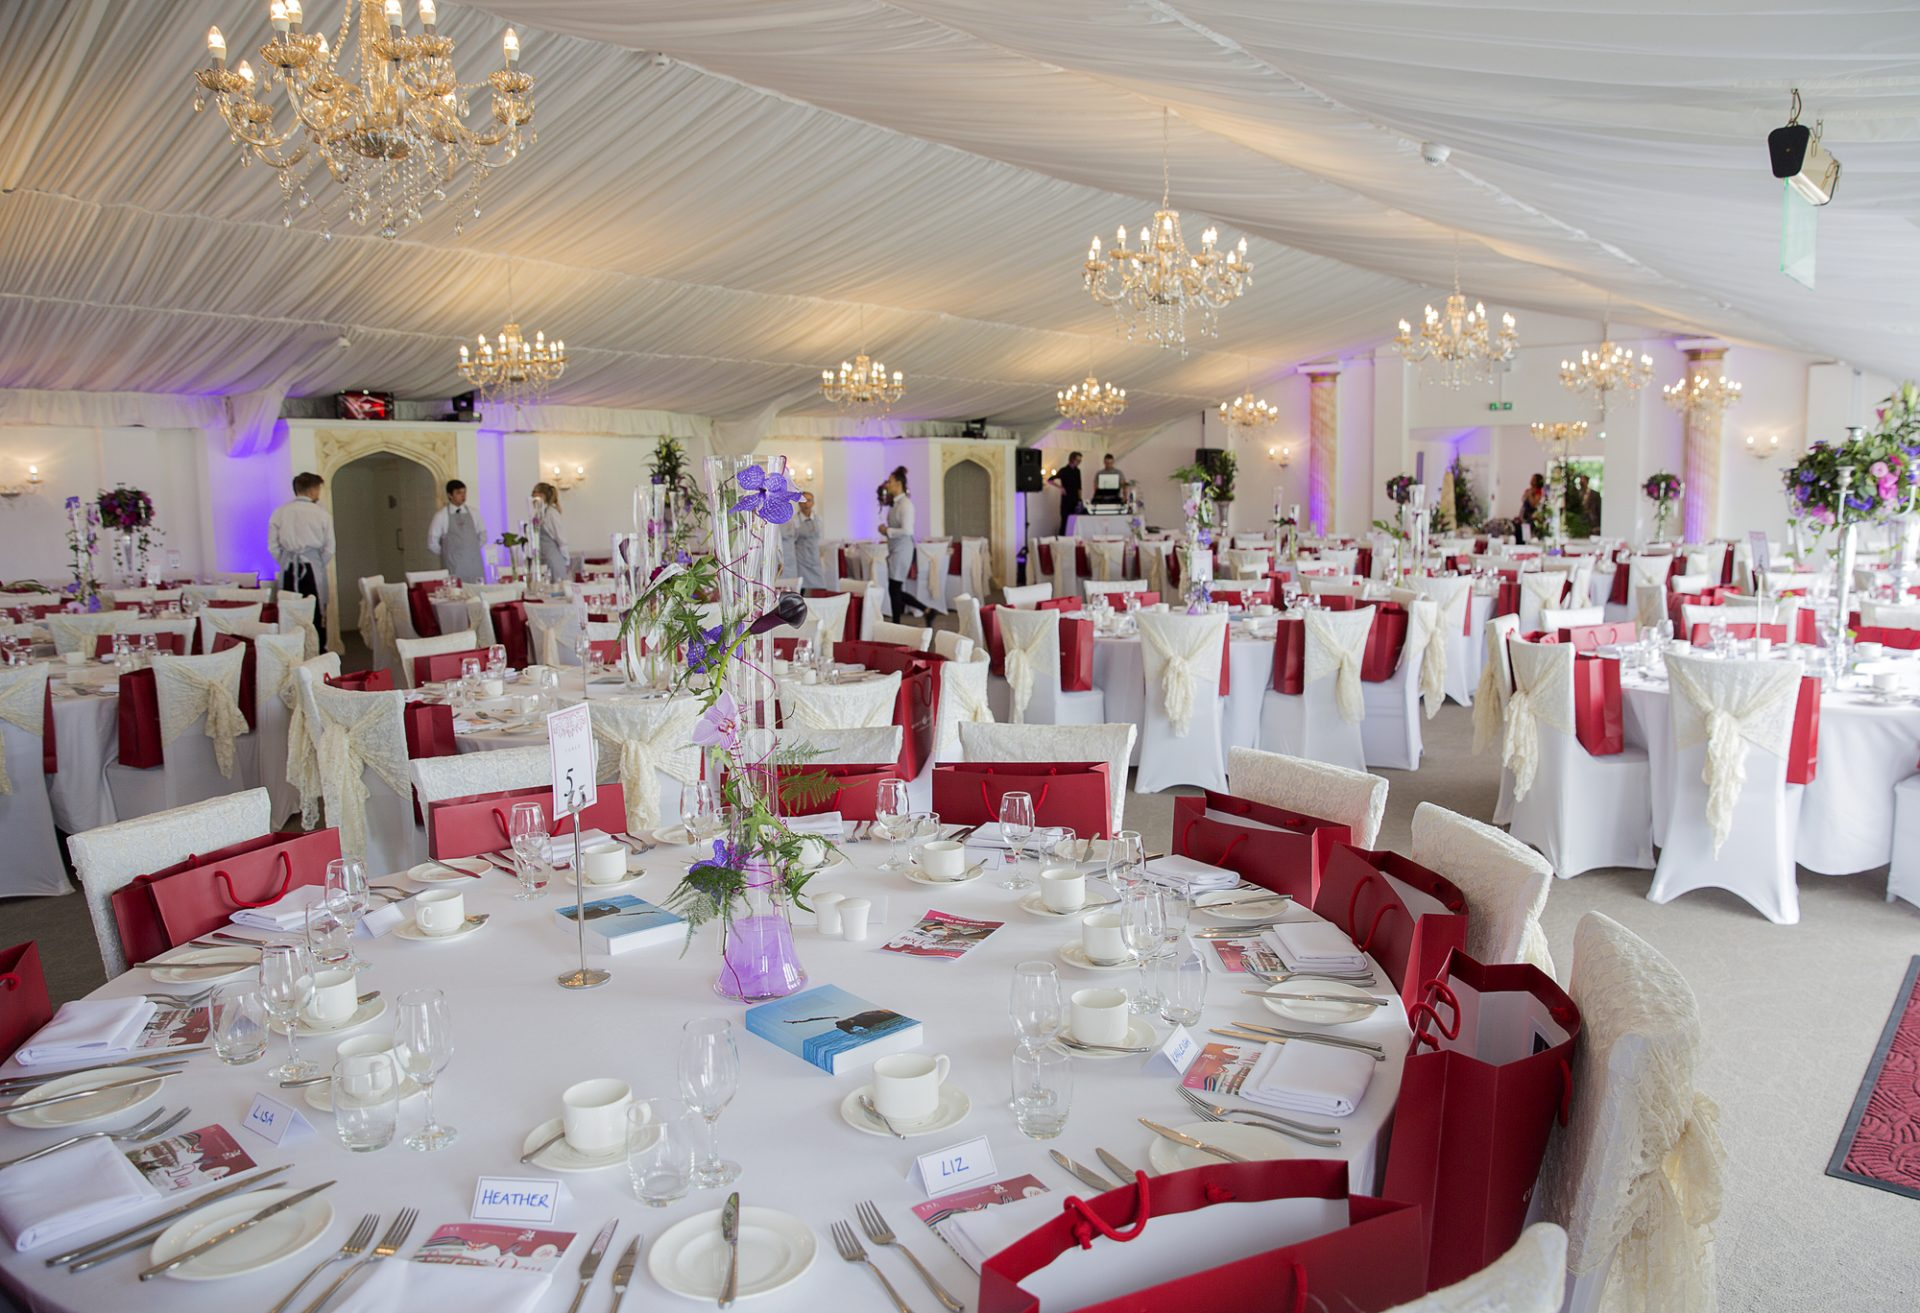 Golden Jubilee Venue available for Asian weddings